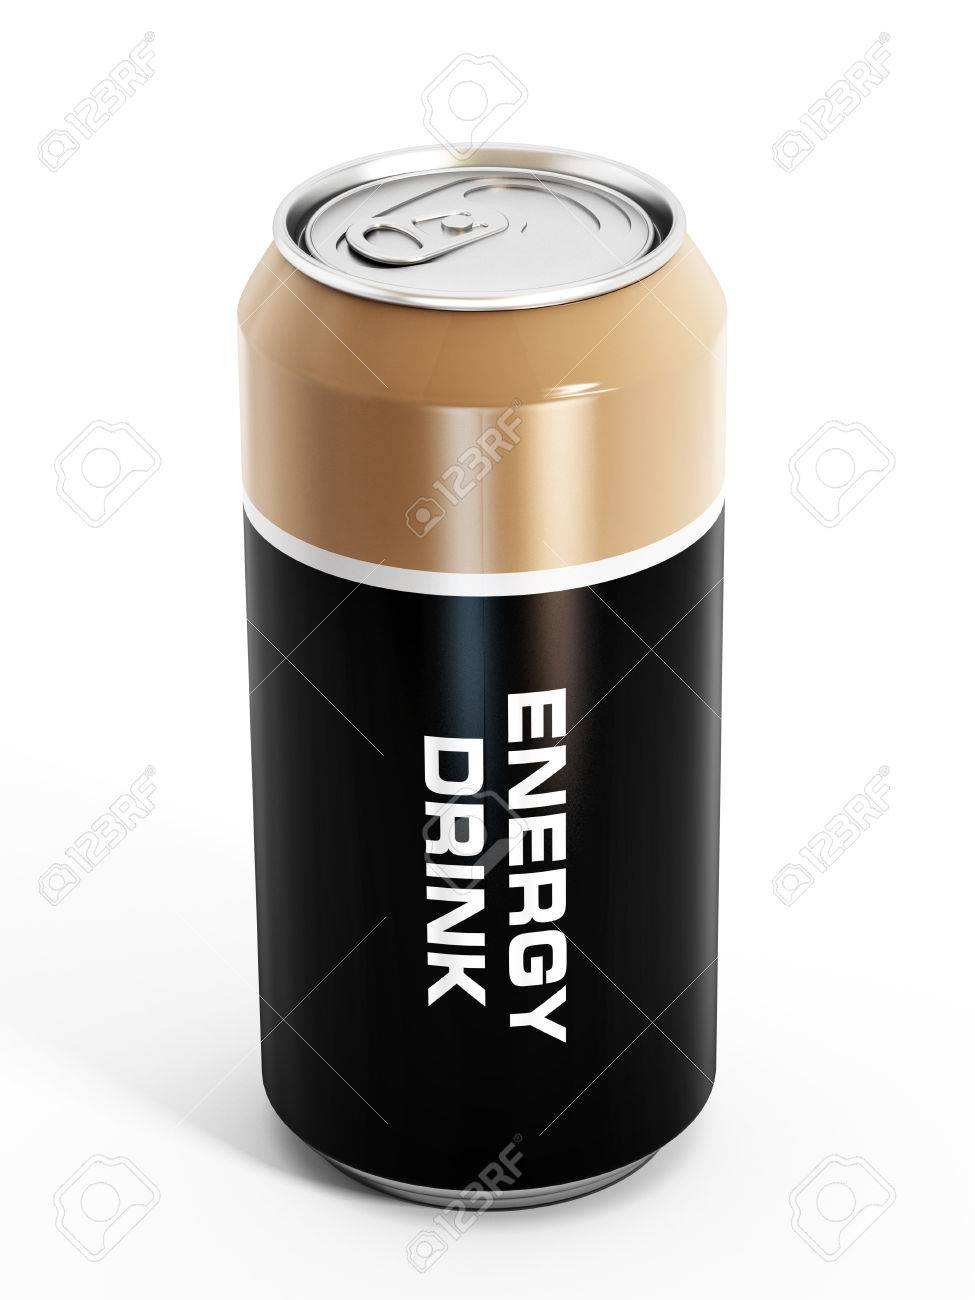 Energy drink can isolated on white background. - 35104788